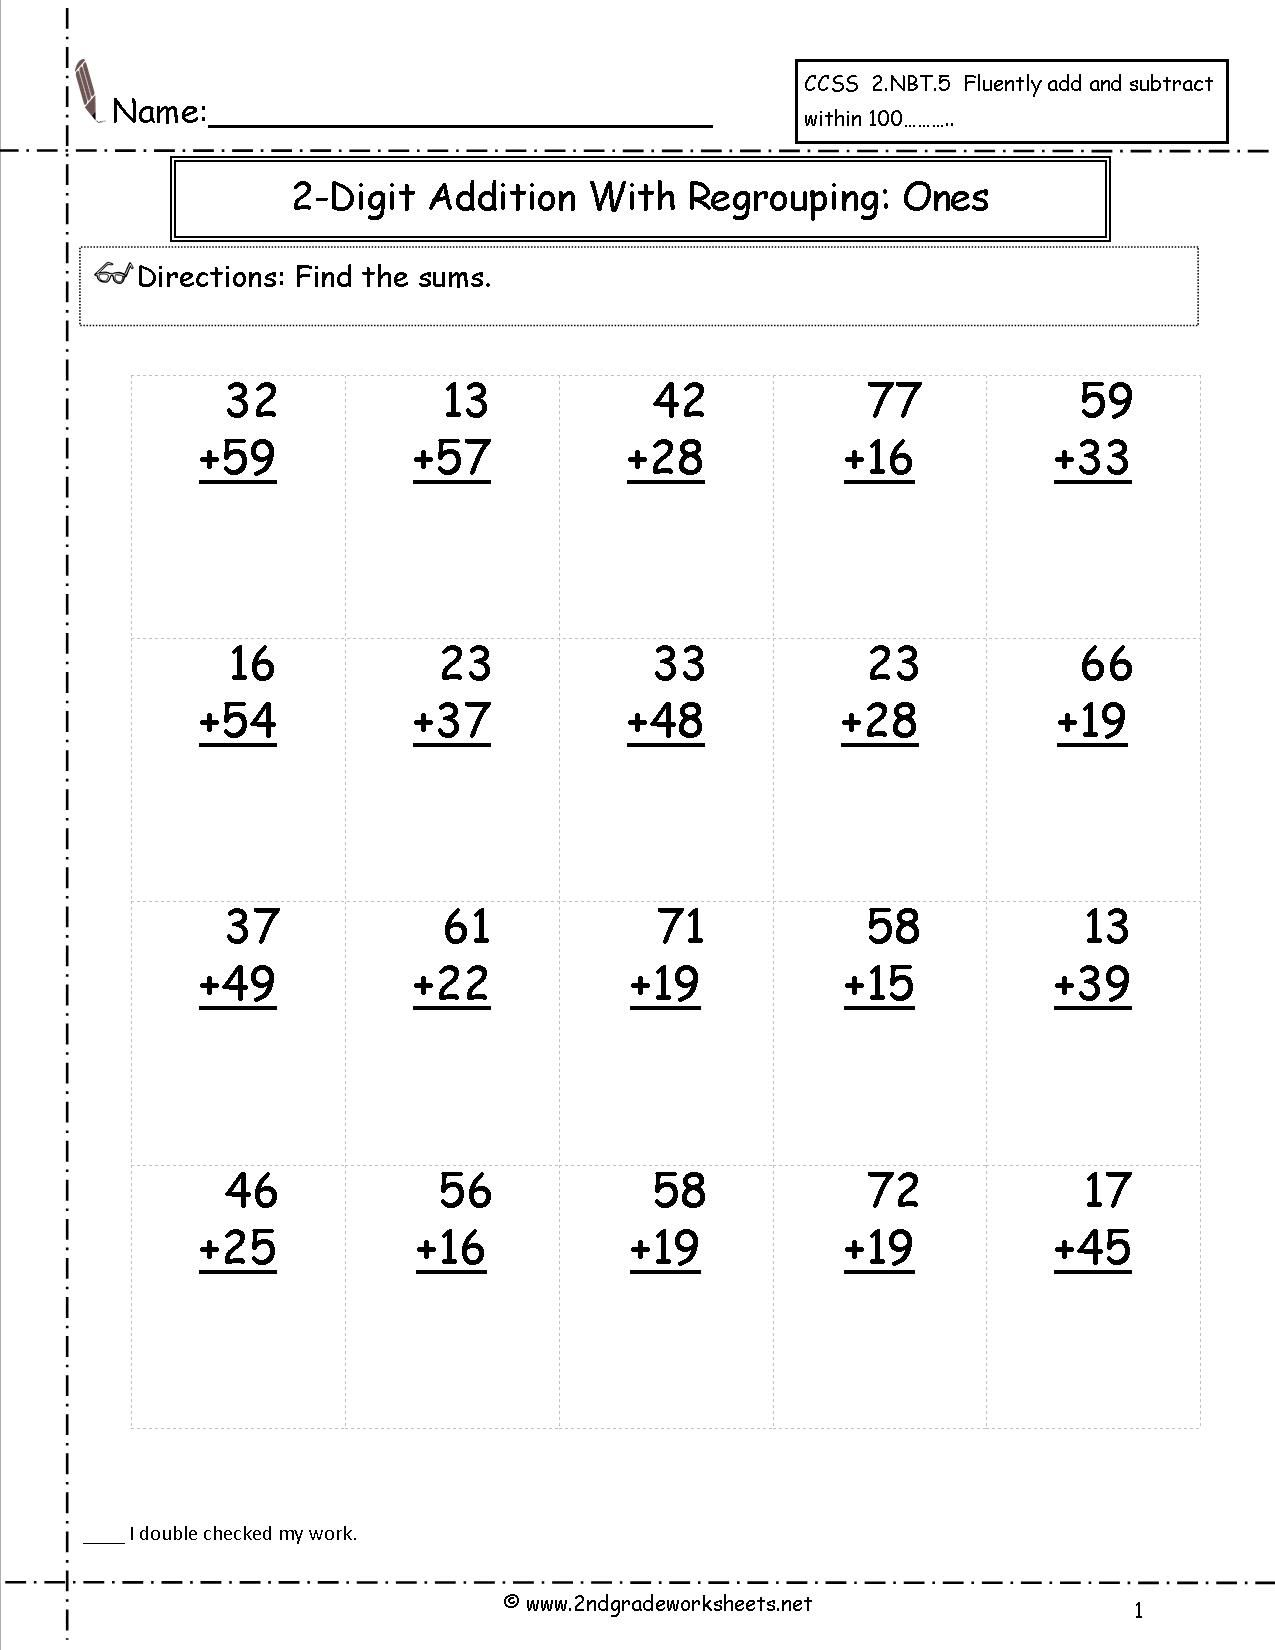 two digit addition with regrouping ones to tens place worksheet math addition worksheets. Black Bedroom Furniture Sets. Home Design Ideas